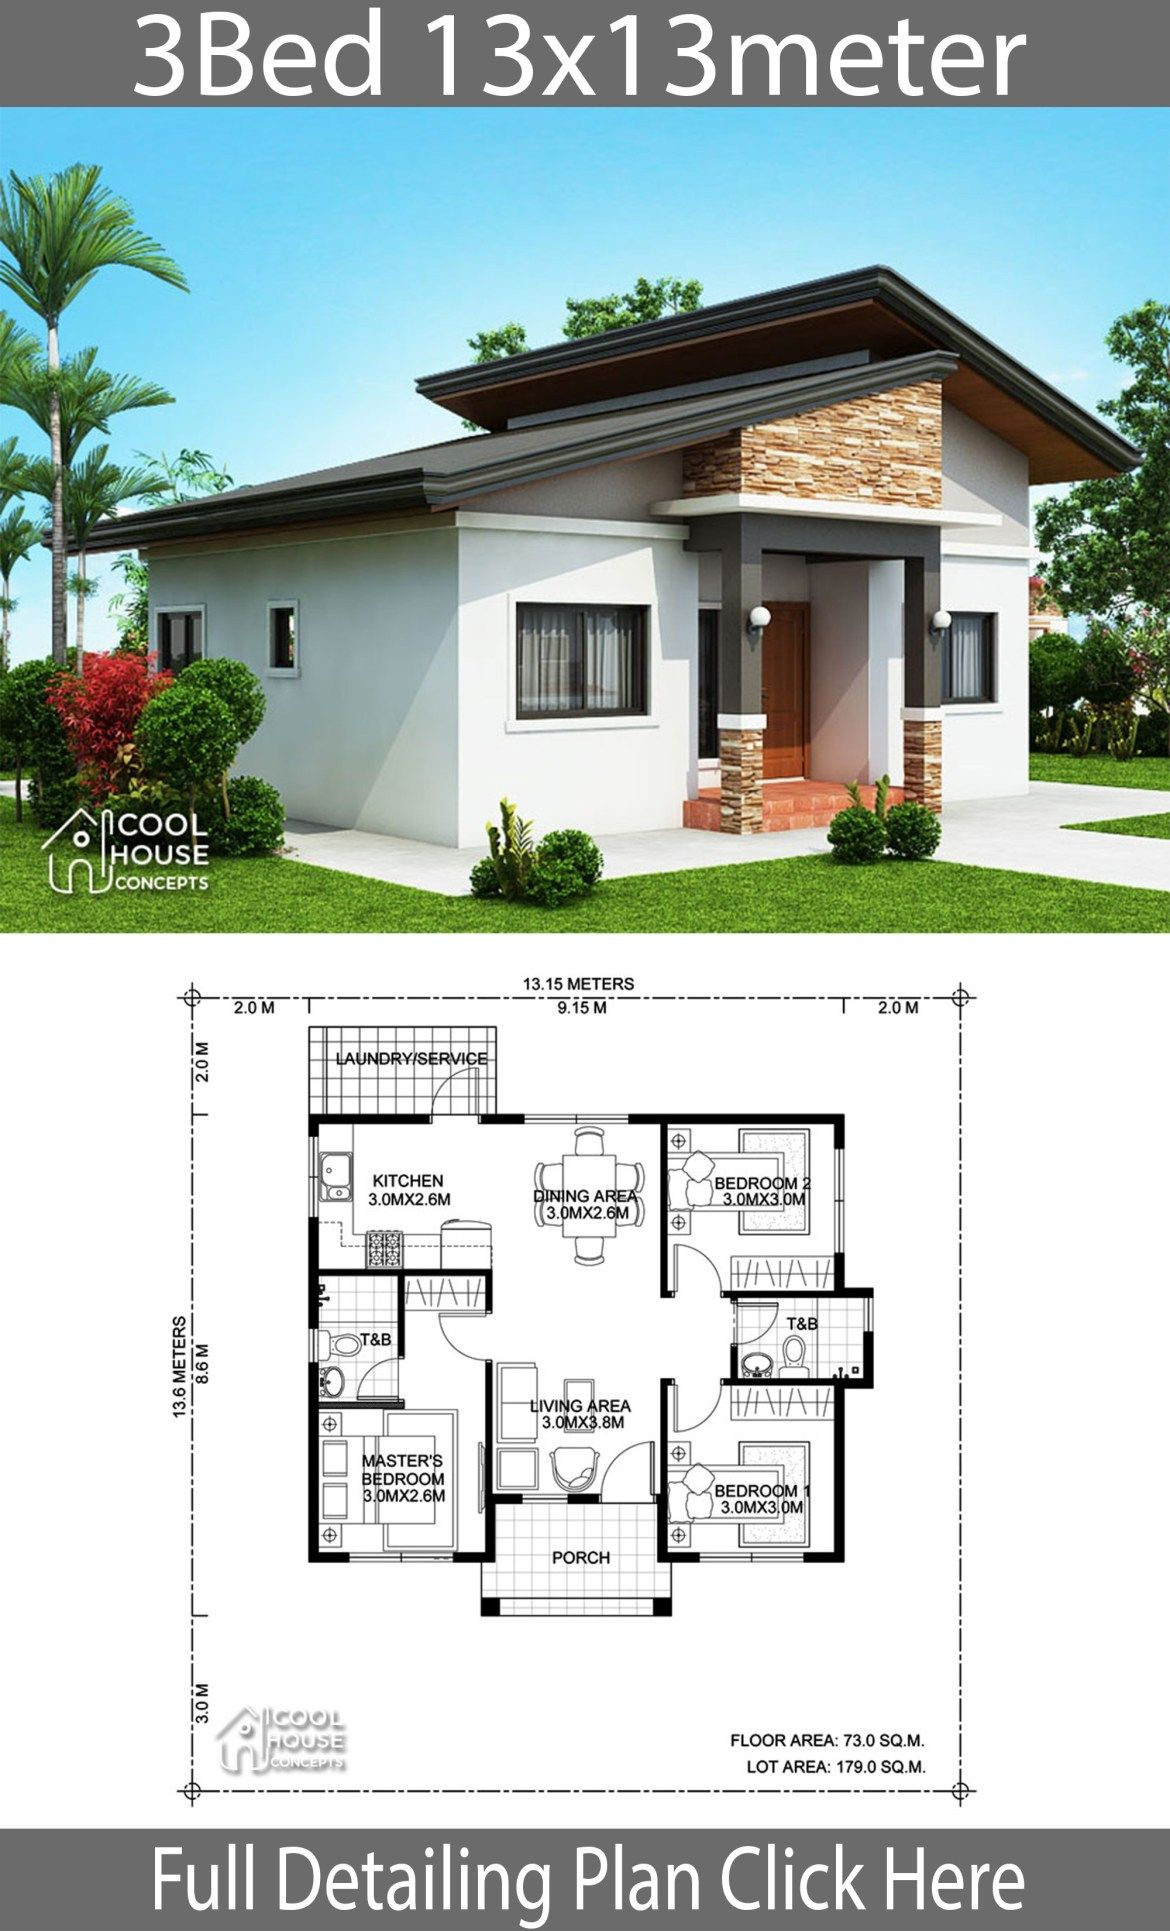 Home Design Plan 13x13m With 3 Bedrooms Home Planssearch Simple House Design Cool House Designs Modern Bungalow House